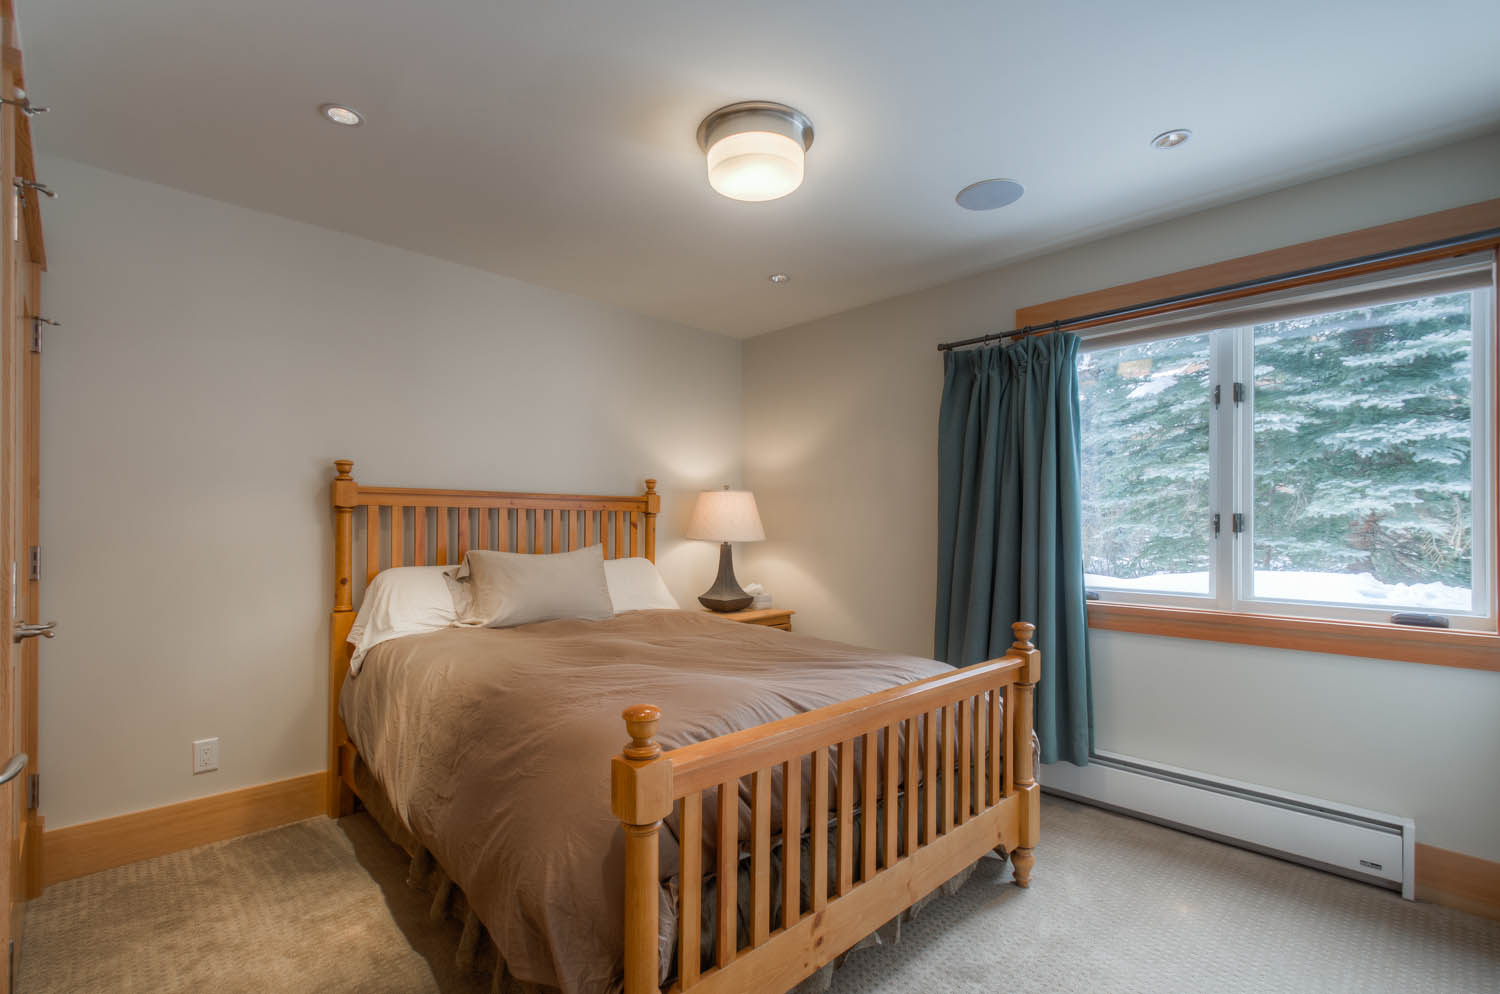 Large Bed, Nightstand, and Table Lamp